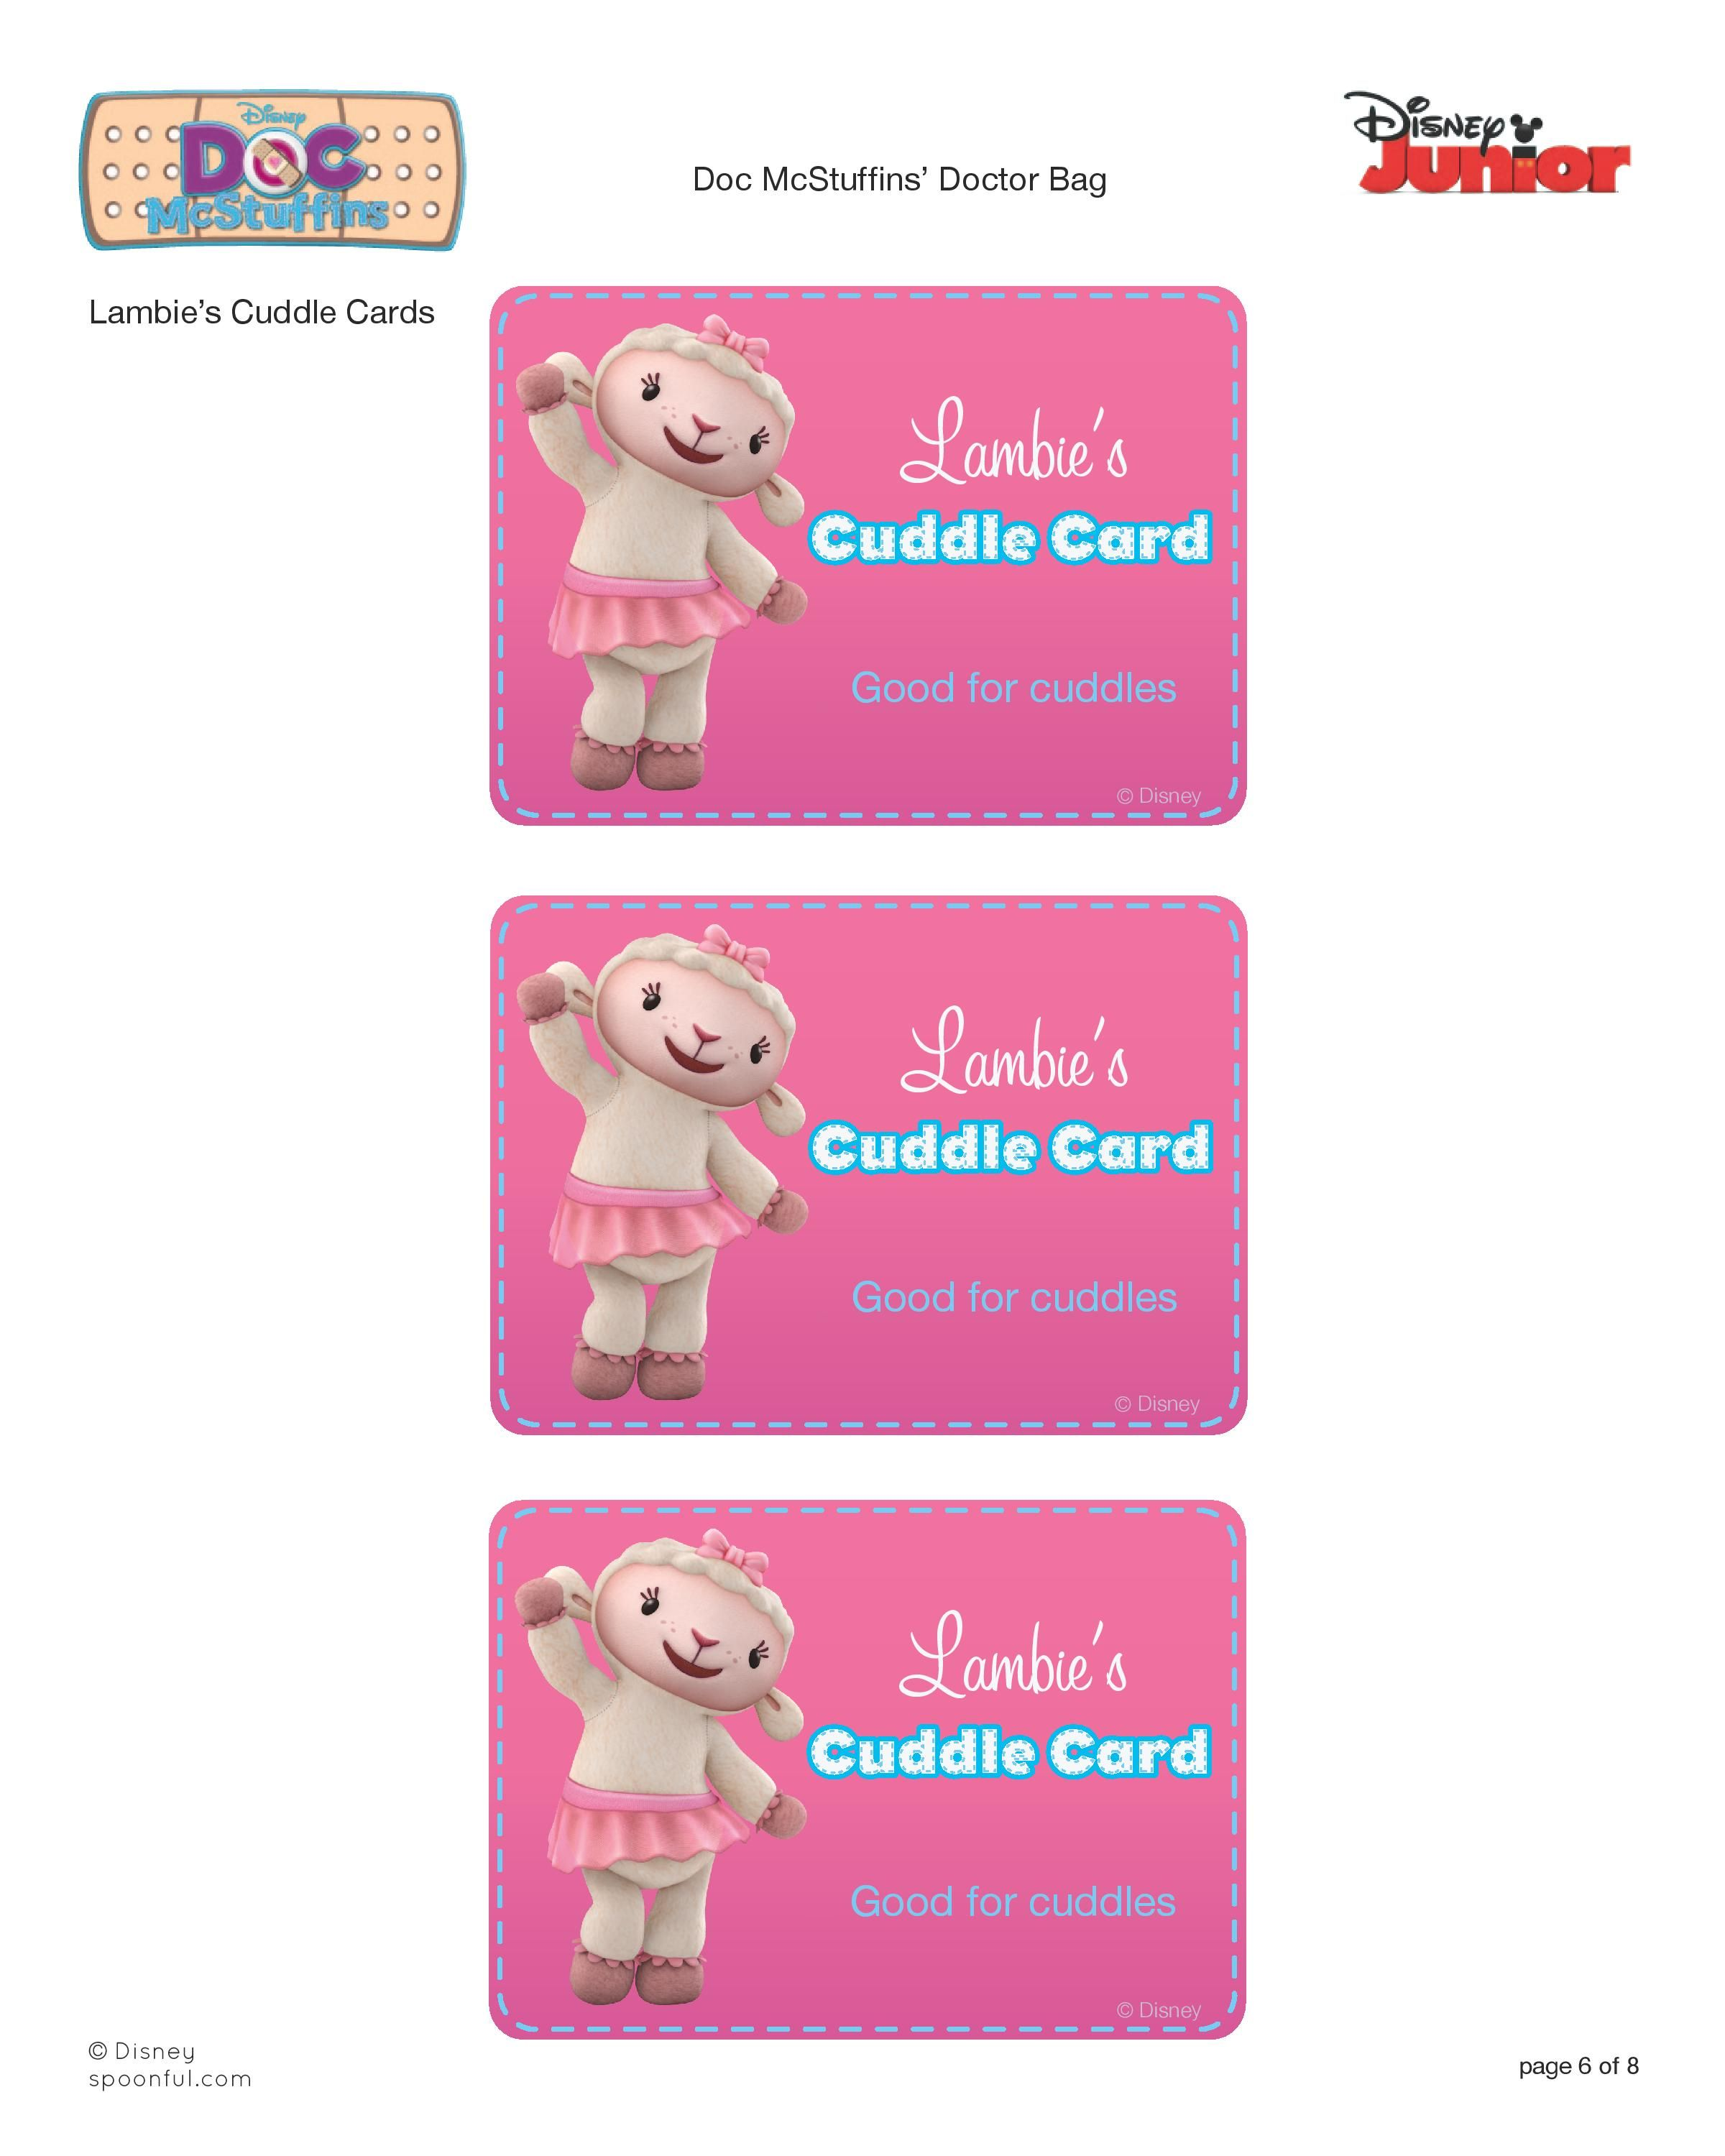 Doc mcstuffins bandages doc mcstuffins party ideas on pinterest doc - Toys And Stuffed Animals Will Always Feel Better Knowing You Re Close By With Doc Mcstuffins Doctor Kit